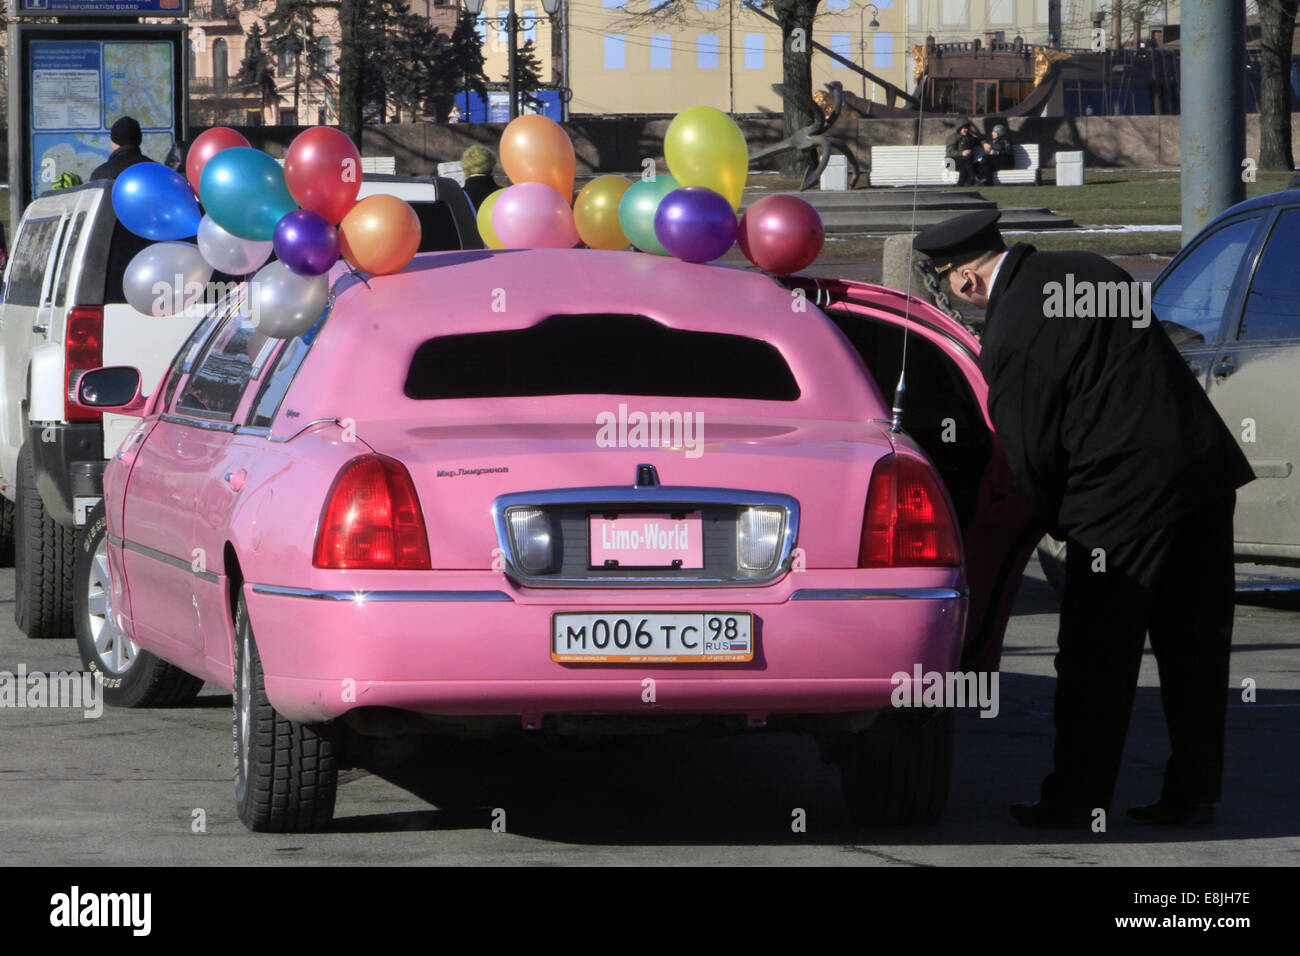 Pink russia car. Limousine. - Stock Image